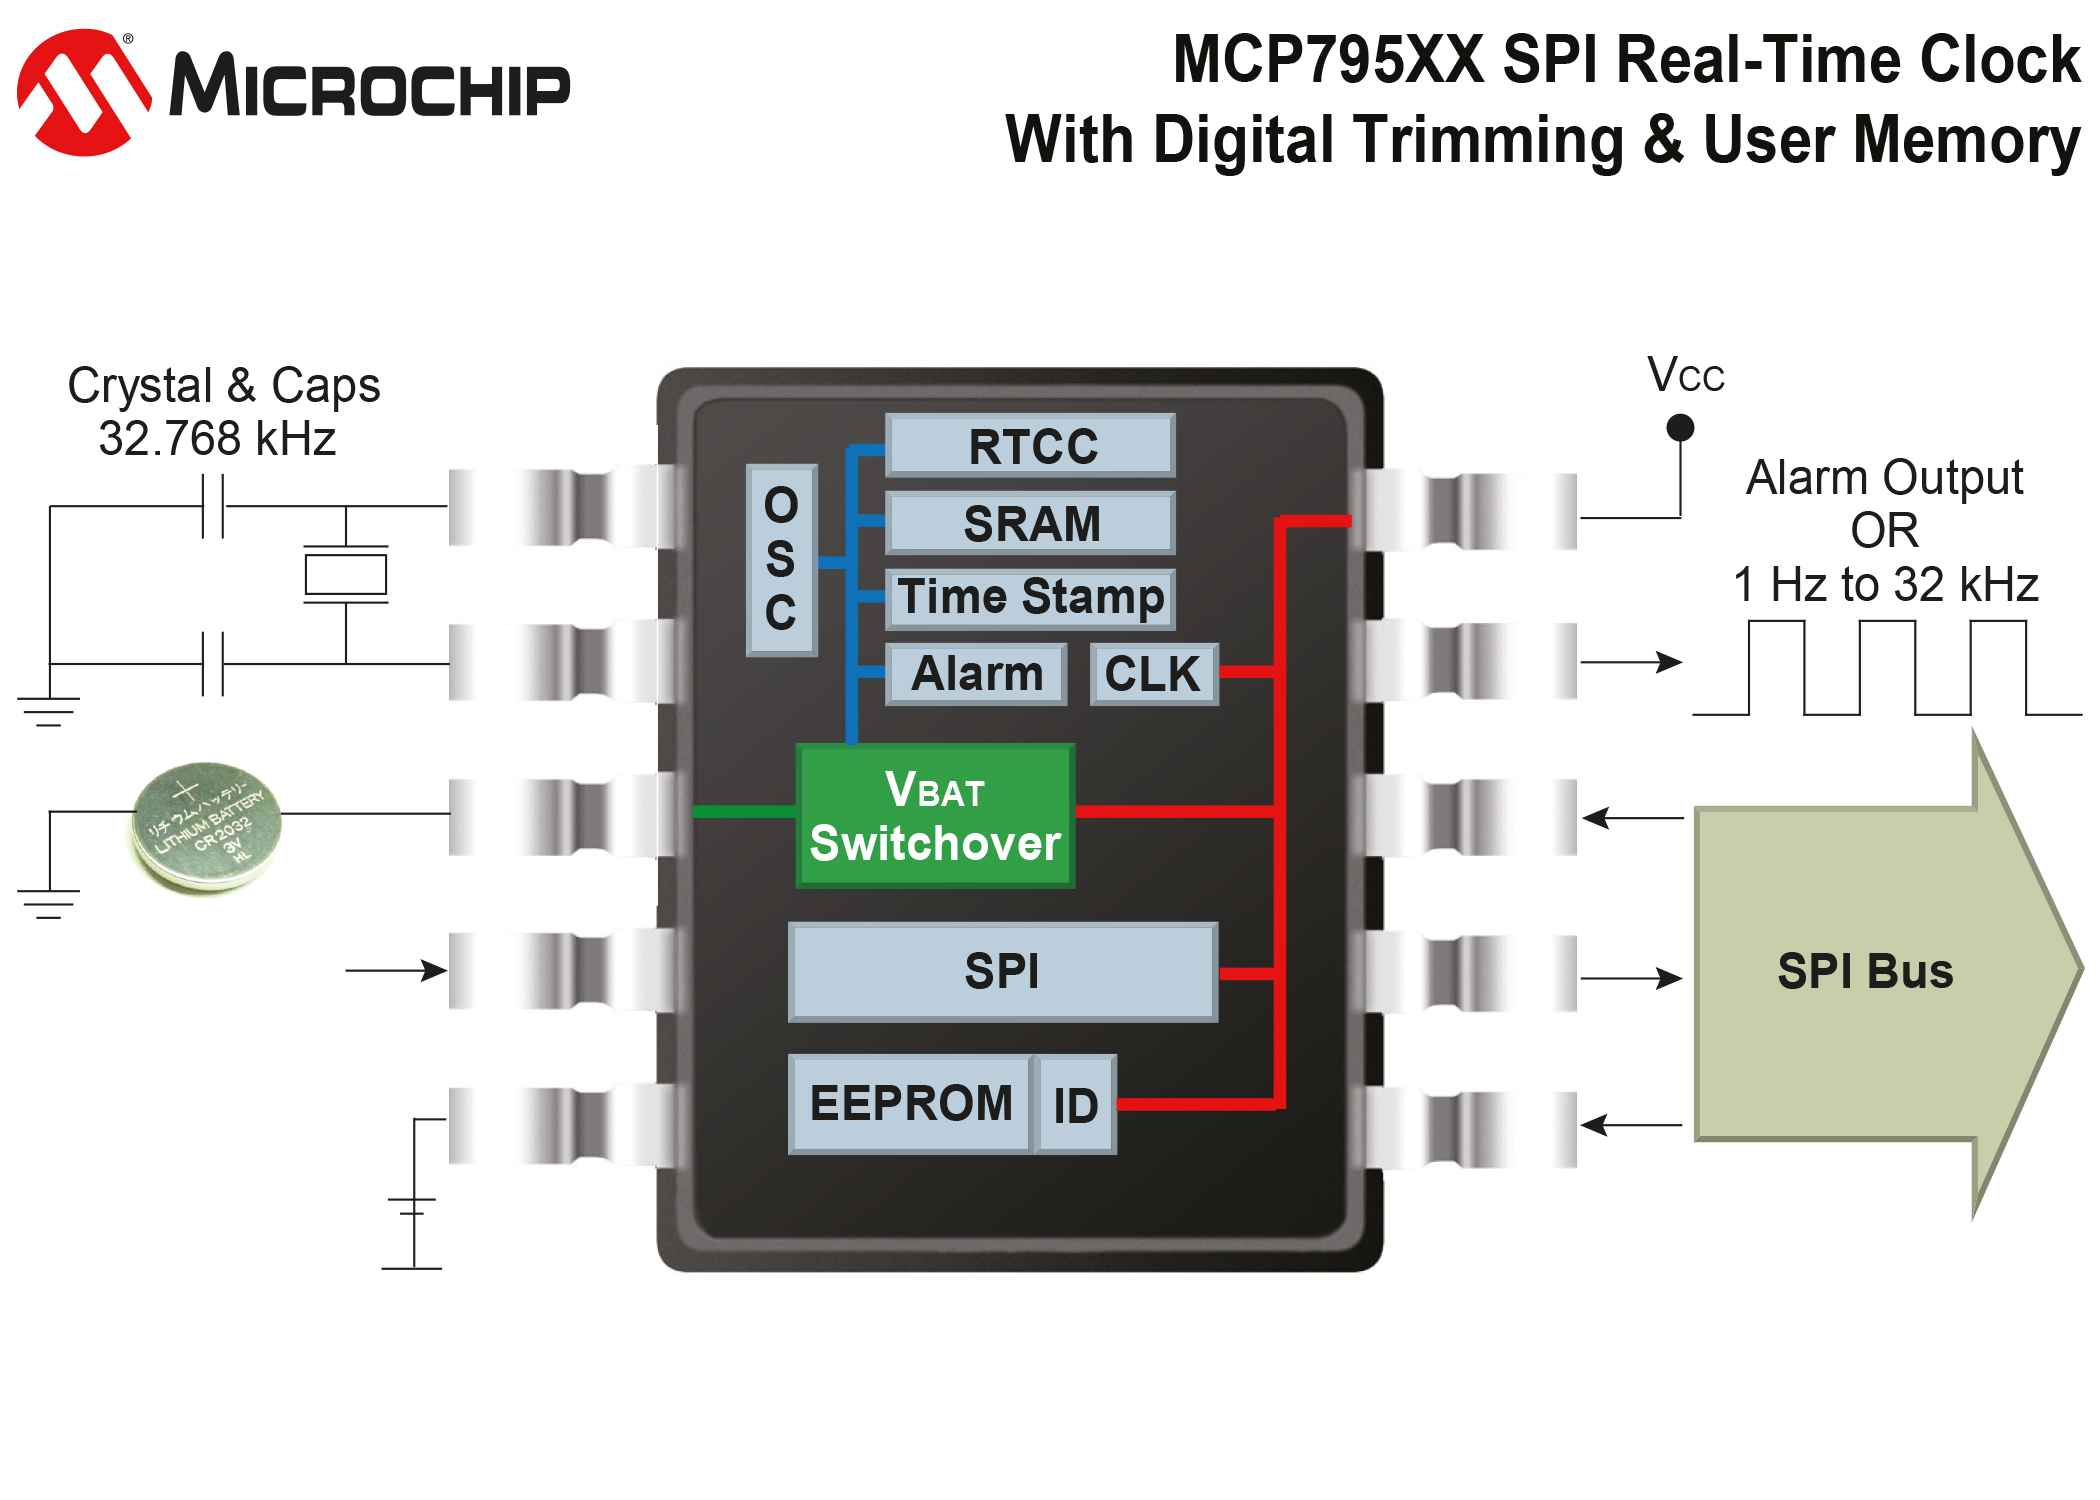 mcp795xx-real-time-clock_7640552656_o